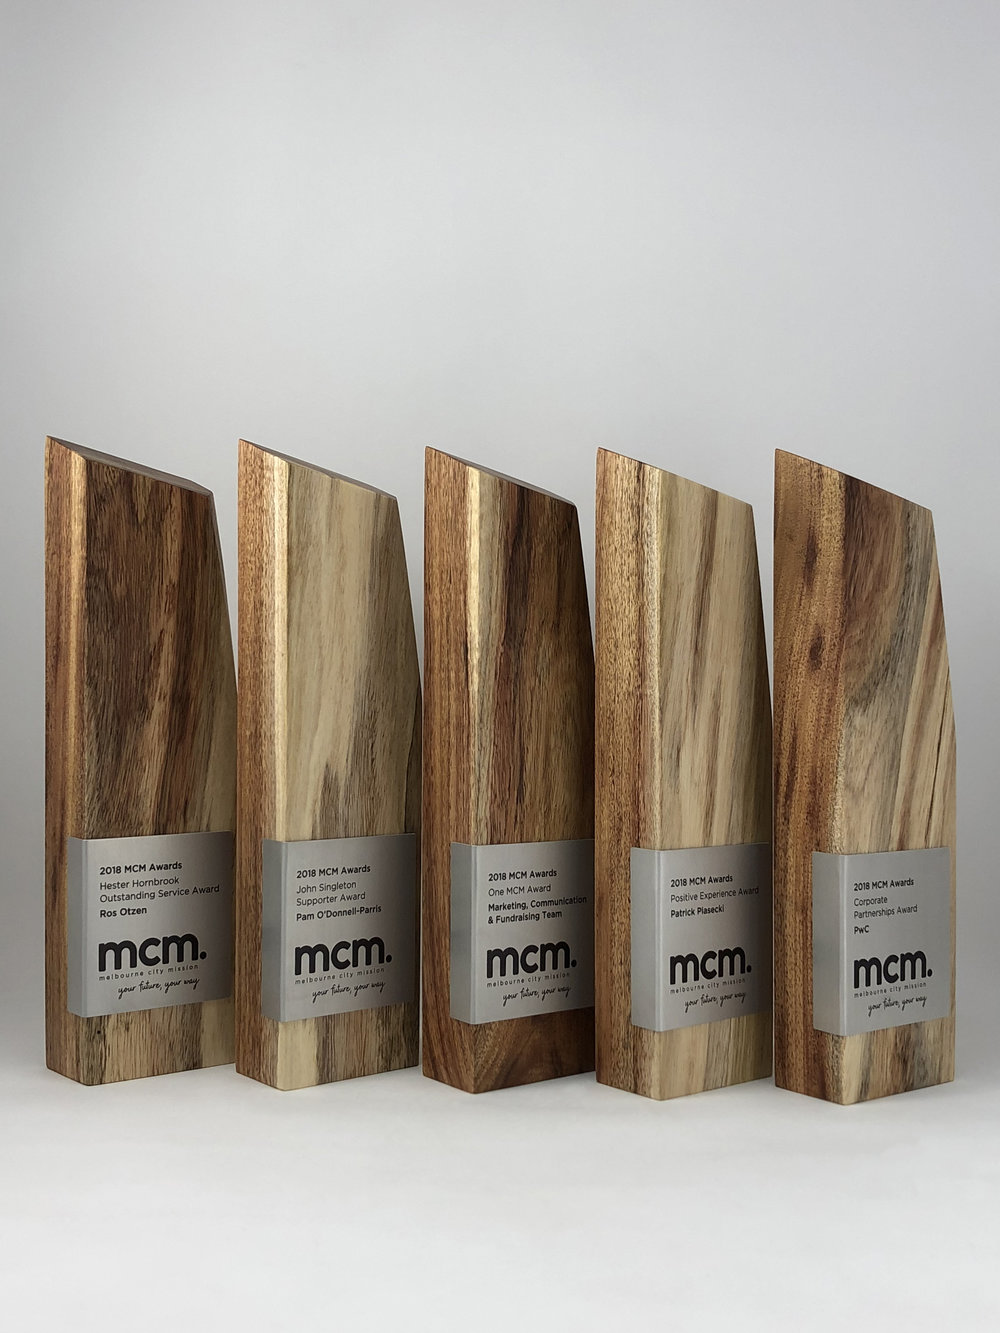 mcm-awards-reclaimed-eco-timber-chamfer-metal-trophy-05.jpg